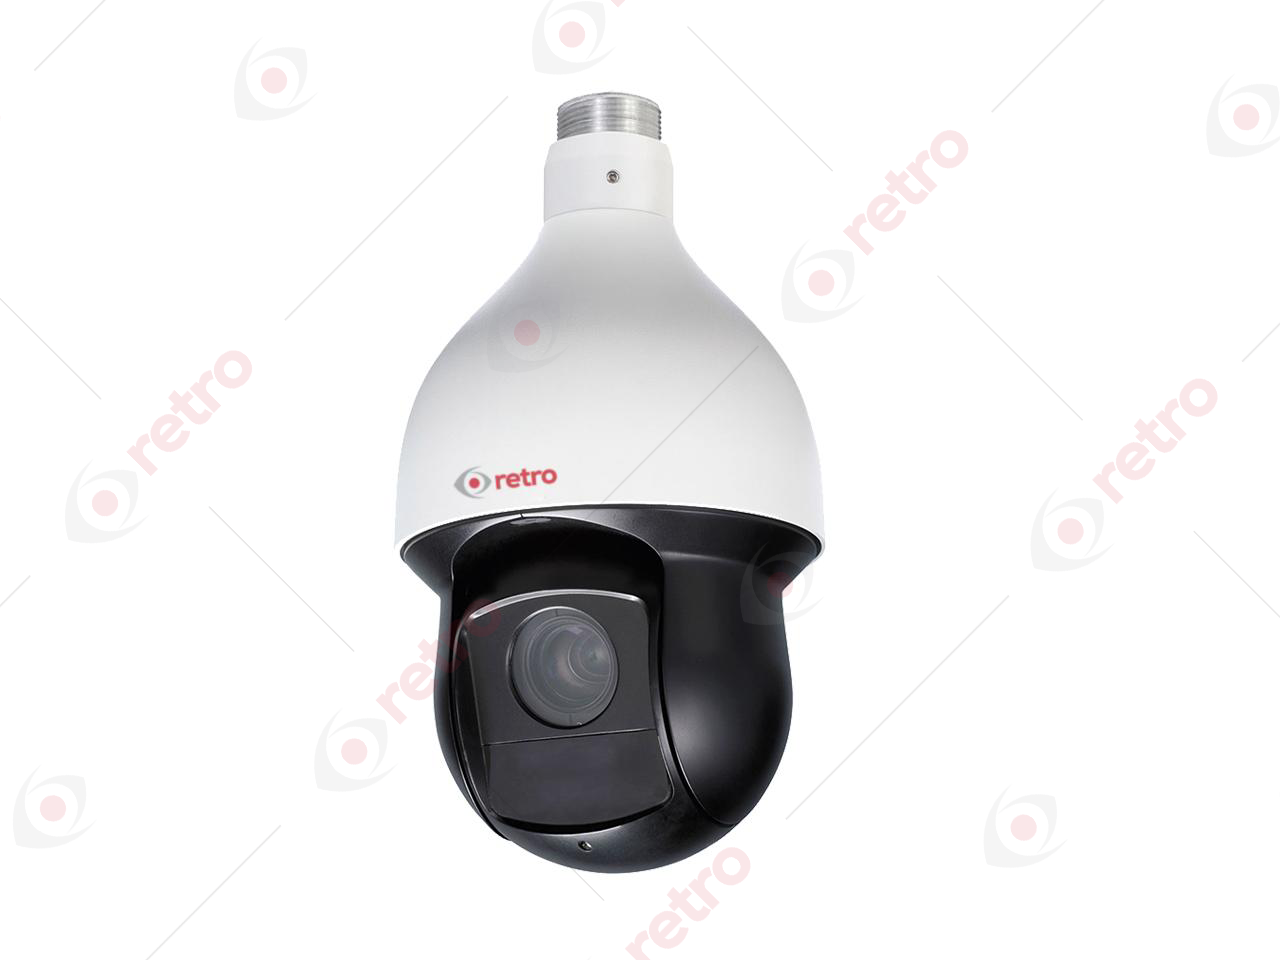 RETRO-DAHUA SD59230T-HN 2MEGAPİKSEL FULL HD ECO-SAVVY IR SPEED DOME IP KAMERA